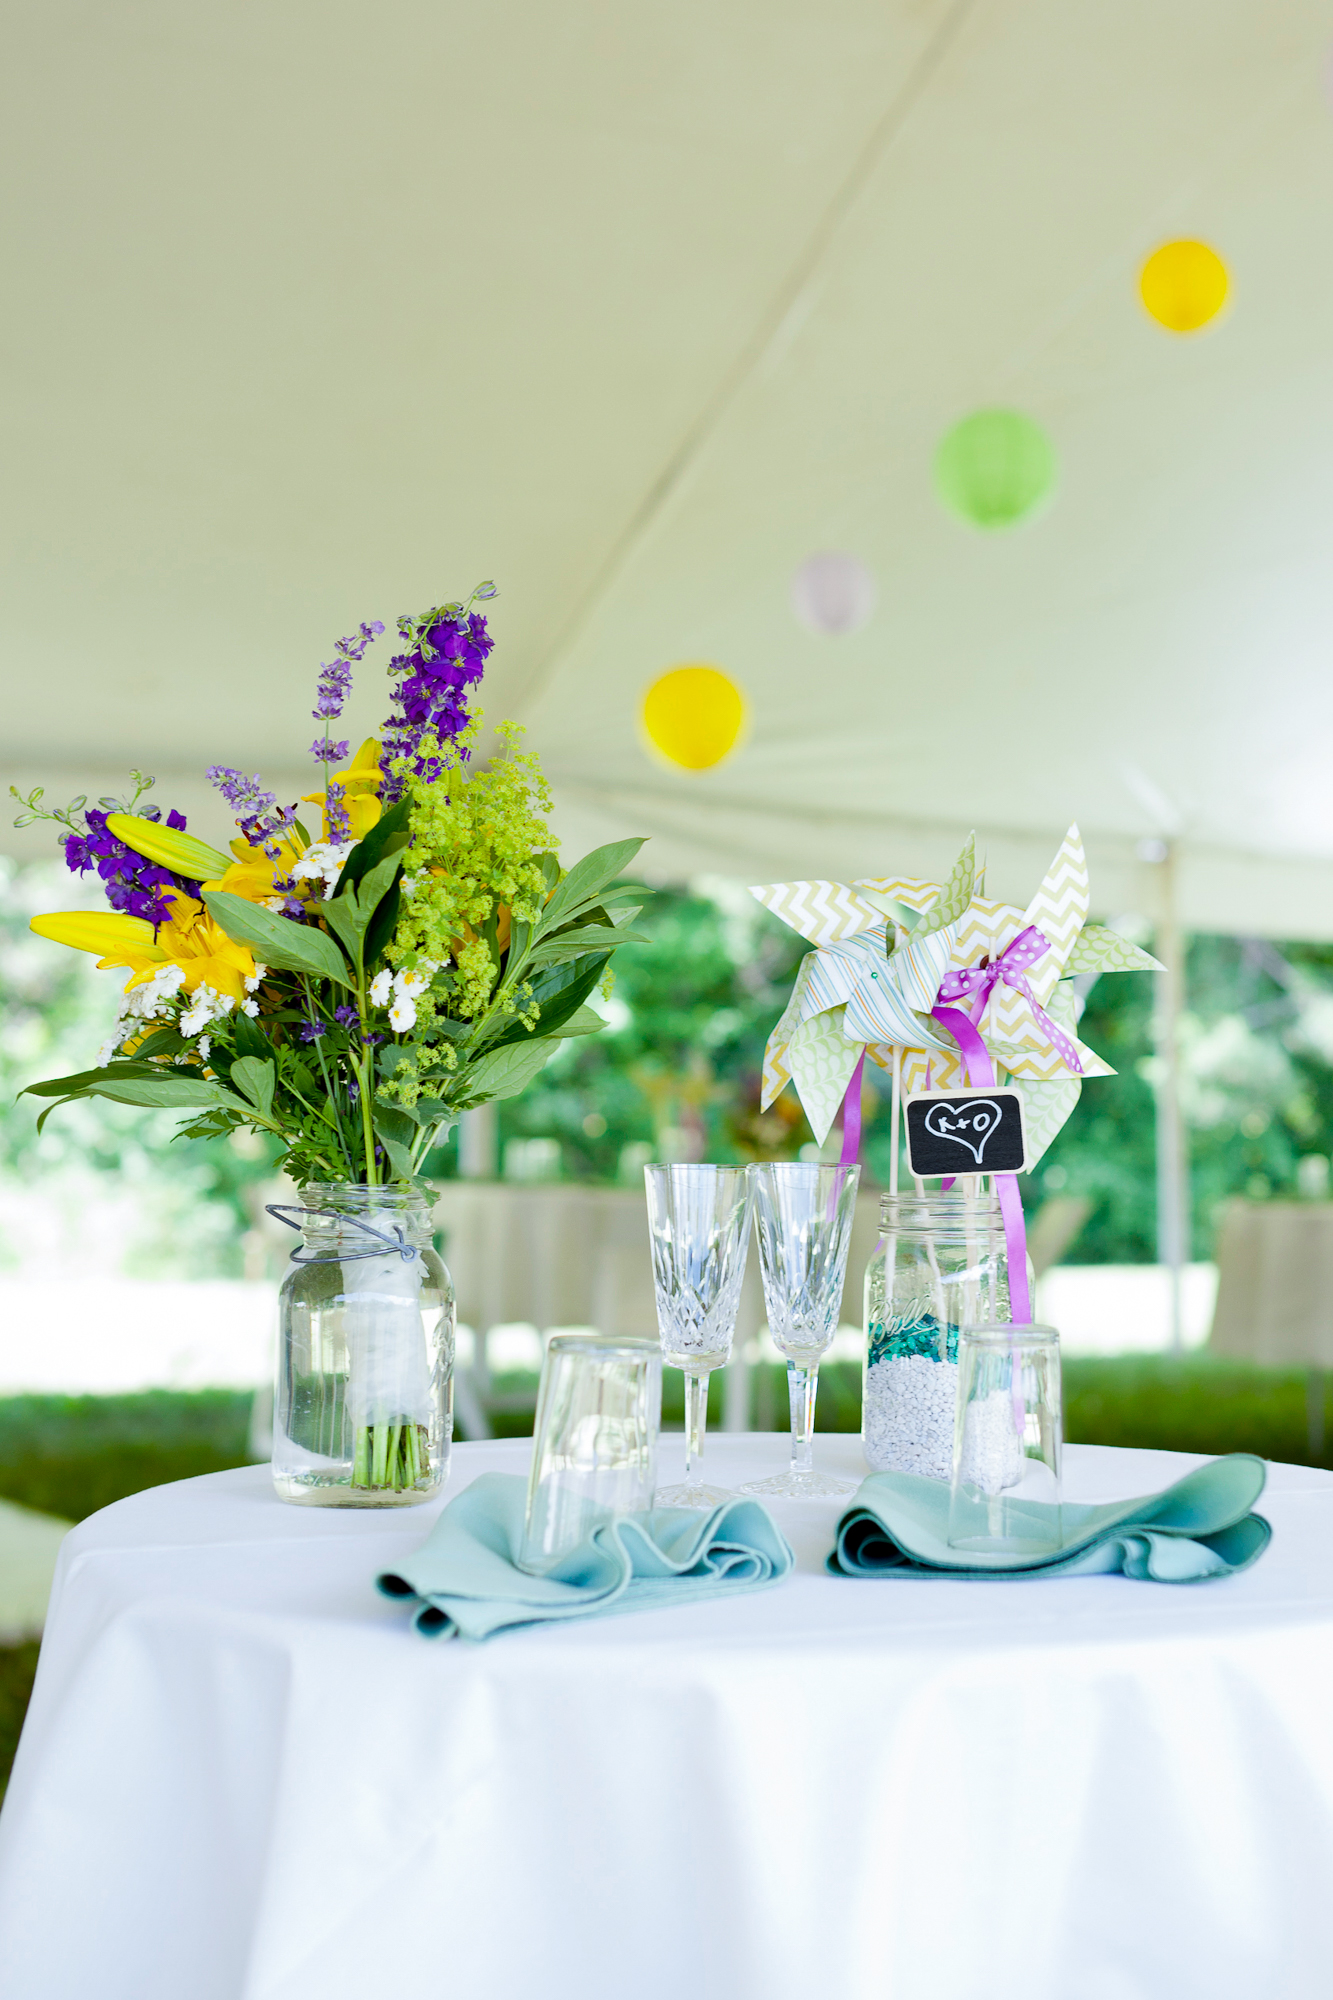 129_CarlyGaebe_SteadfastStudio_WeddingPhotography_NewYork_Ithaca_Winery_SixMileCreekVineyard_TableDecor_Colorful_FlowerArrangement.jpg